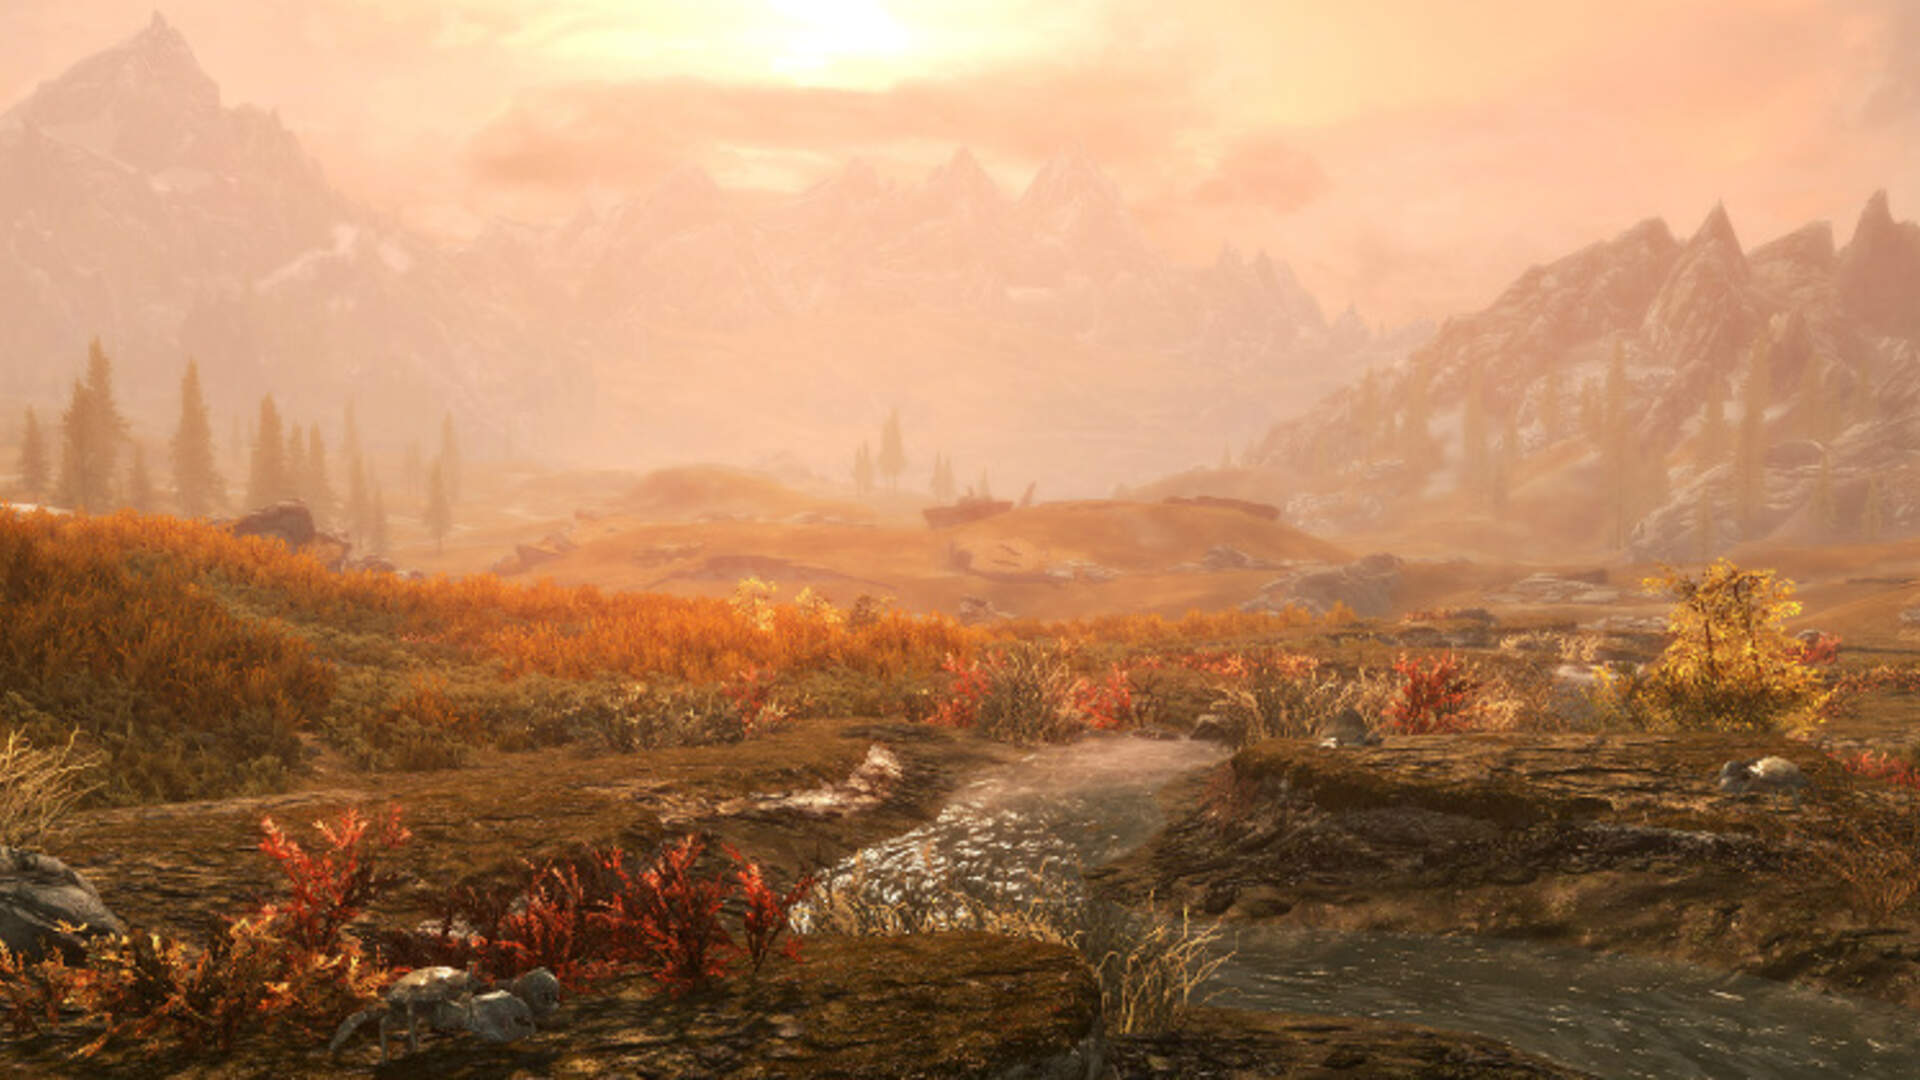 Fallout 4 and Skyrim Get Surprise Mod and Pro Support on PS4